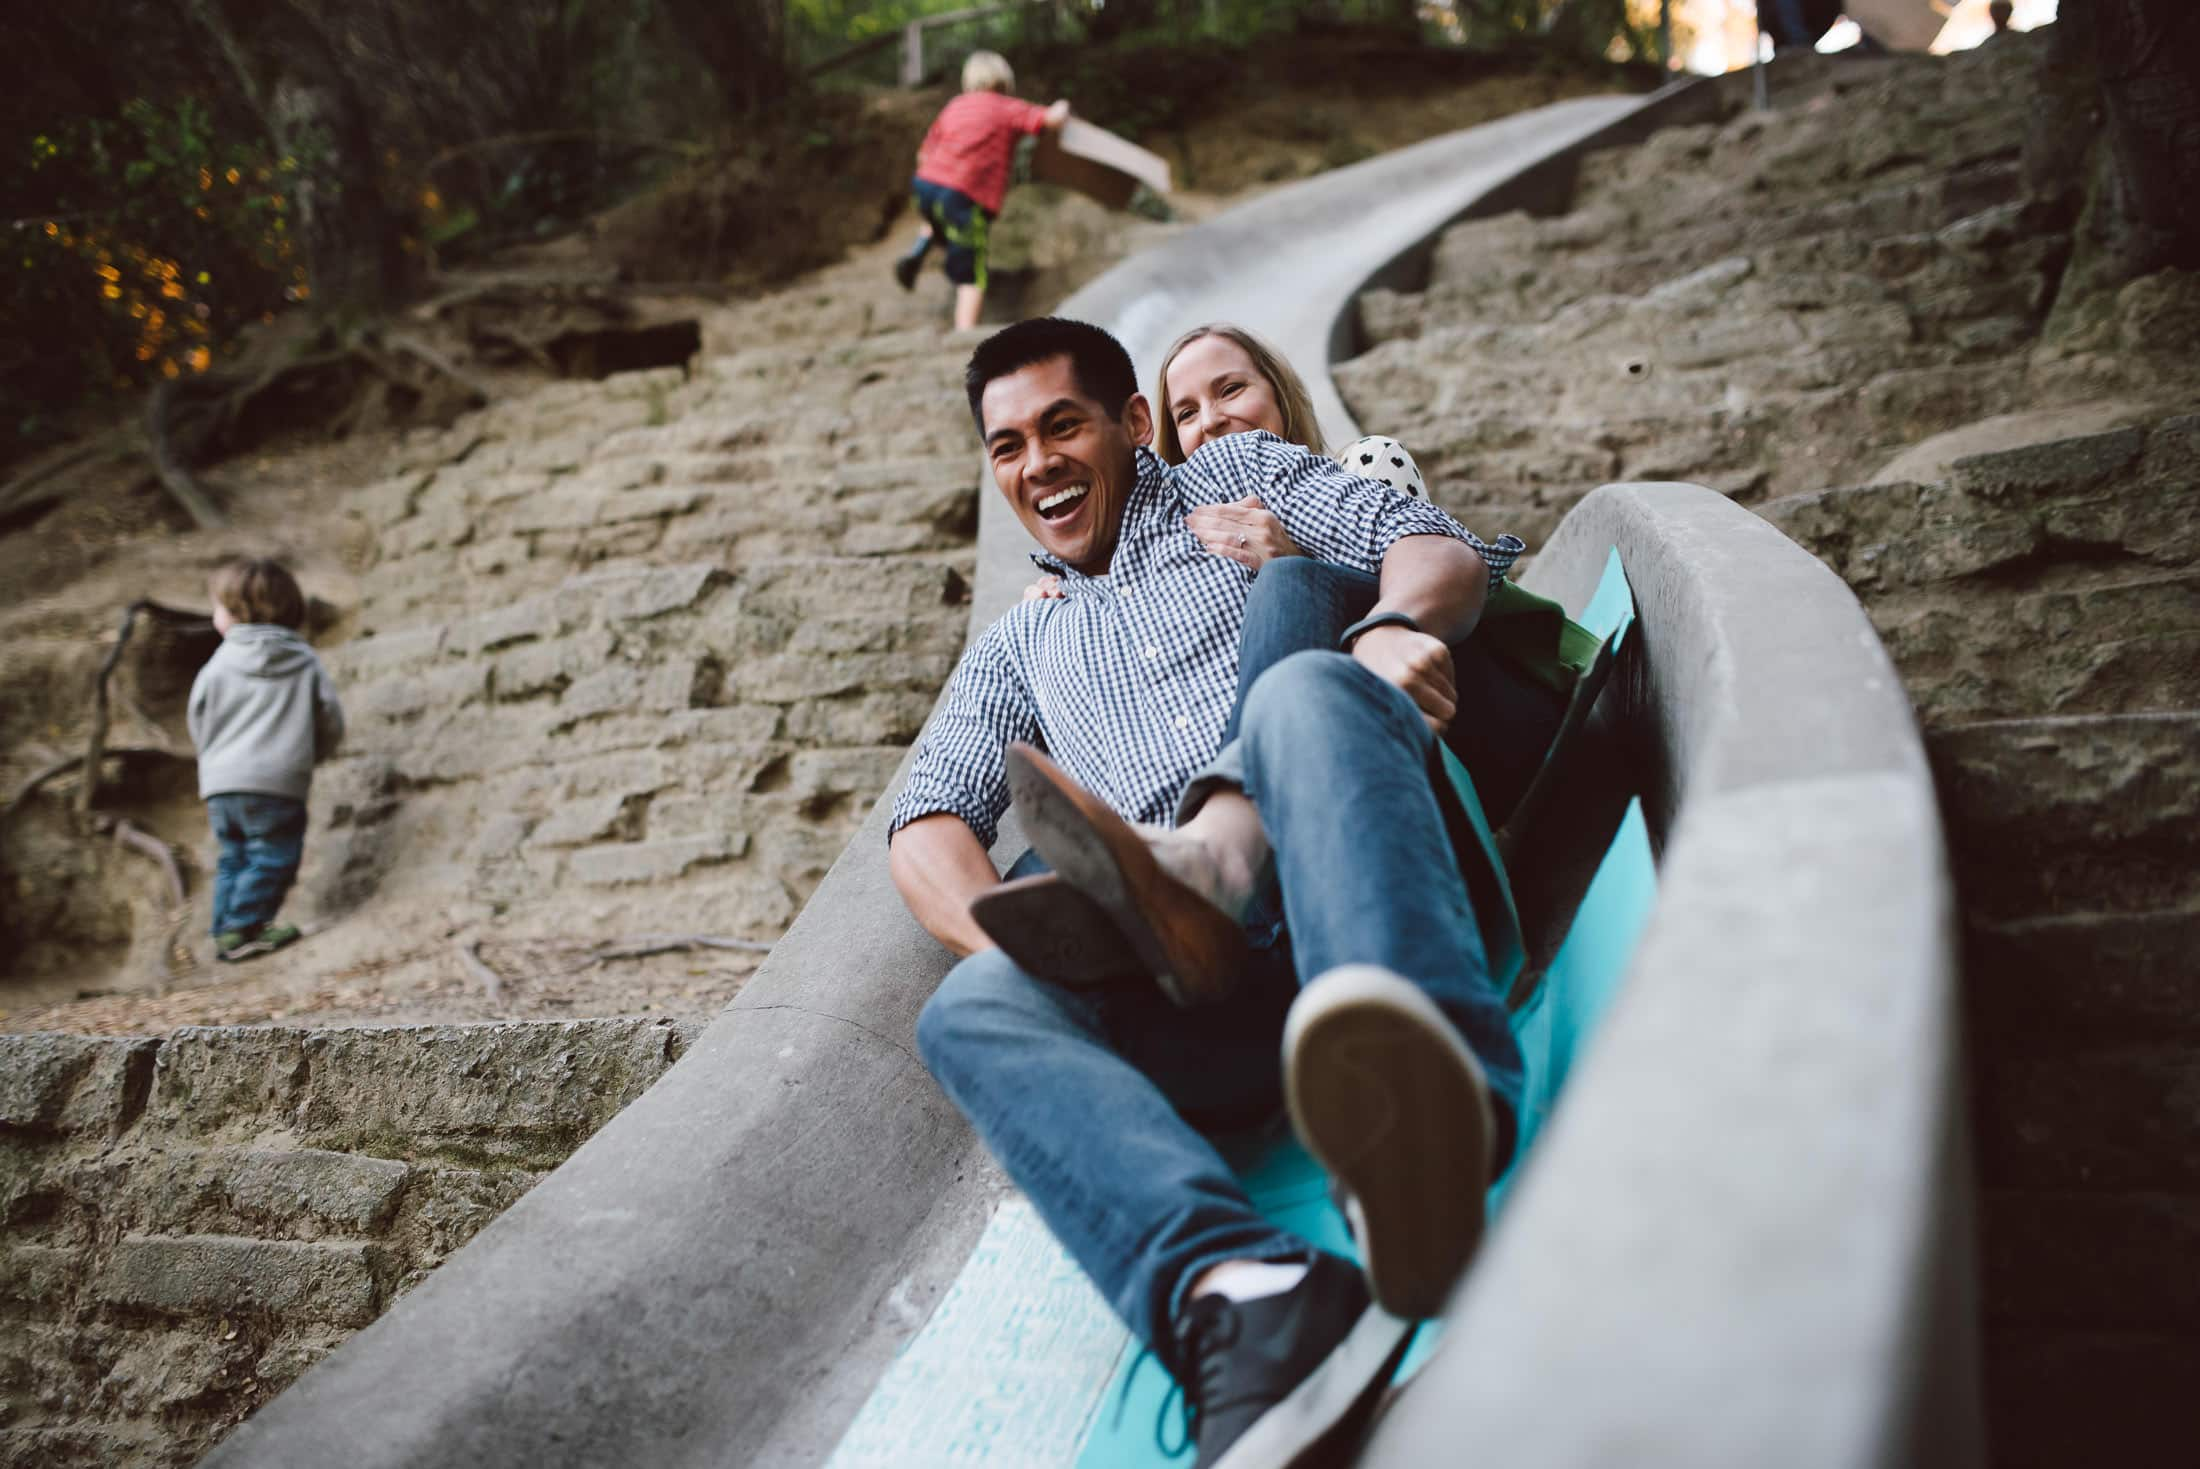 Engagement couple on slide in codornices park in berkeley